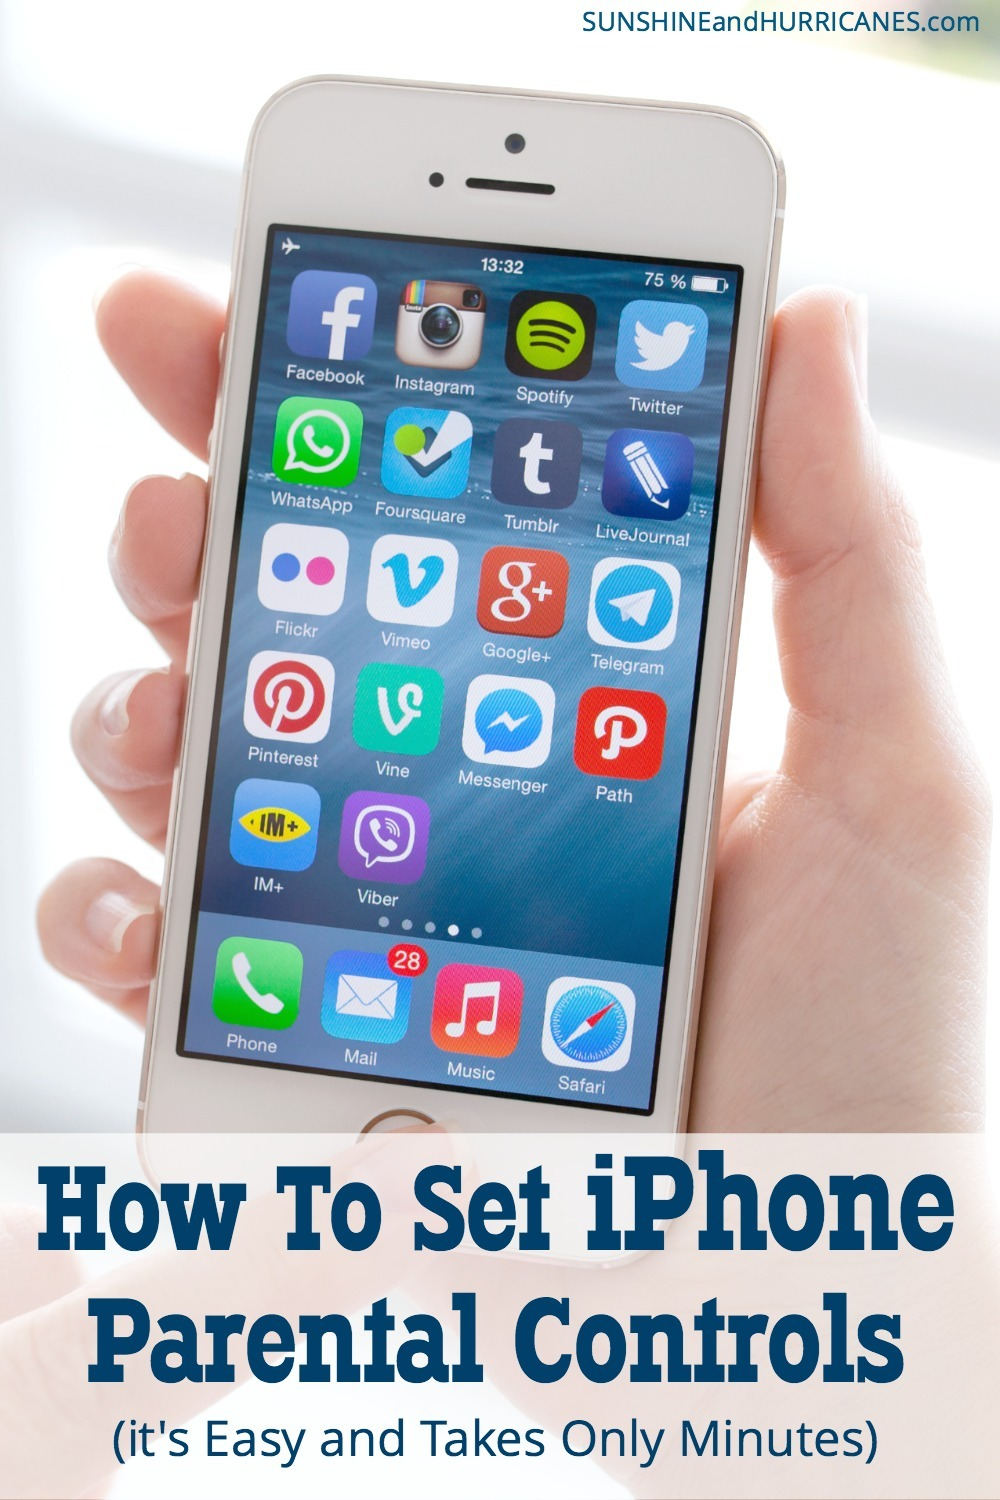 Do you want to keep your kids safe when they are using their iPhone (or yours)? Here is how to set iPhone parental controls. It's easy and only take a few minutes.